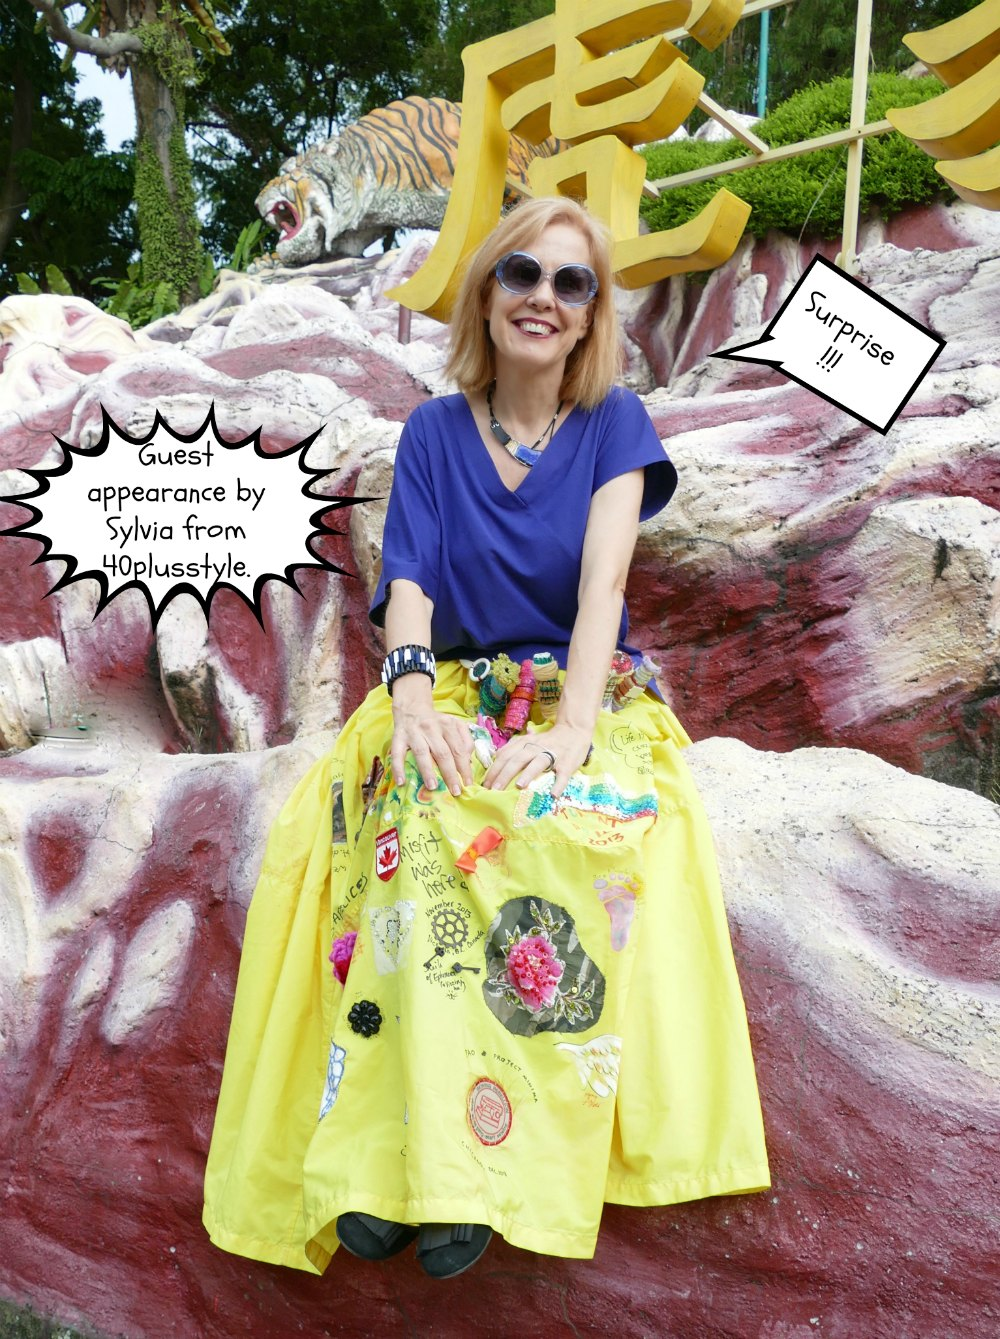 Sylvia from 40plusstyle in the Yellow Skirt Singapore |curlytraveller.com